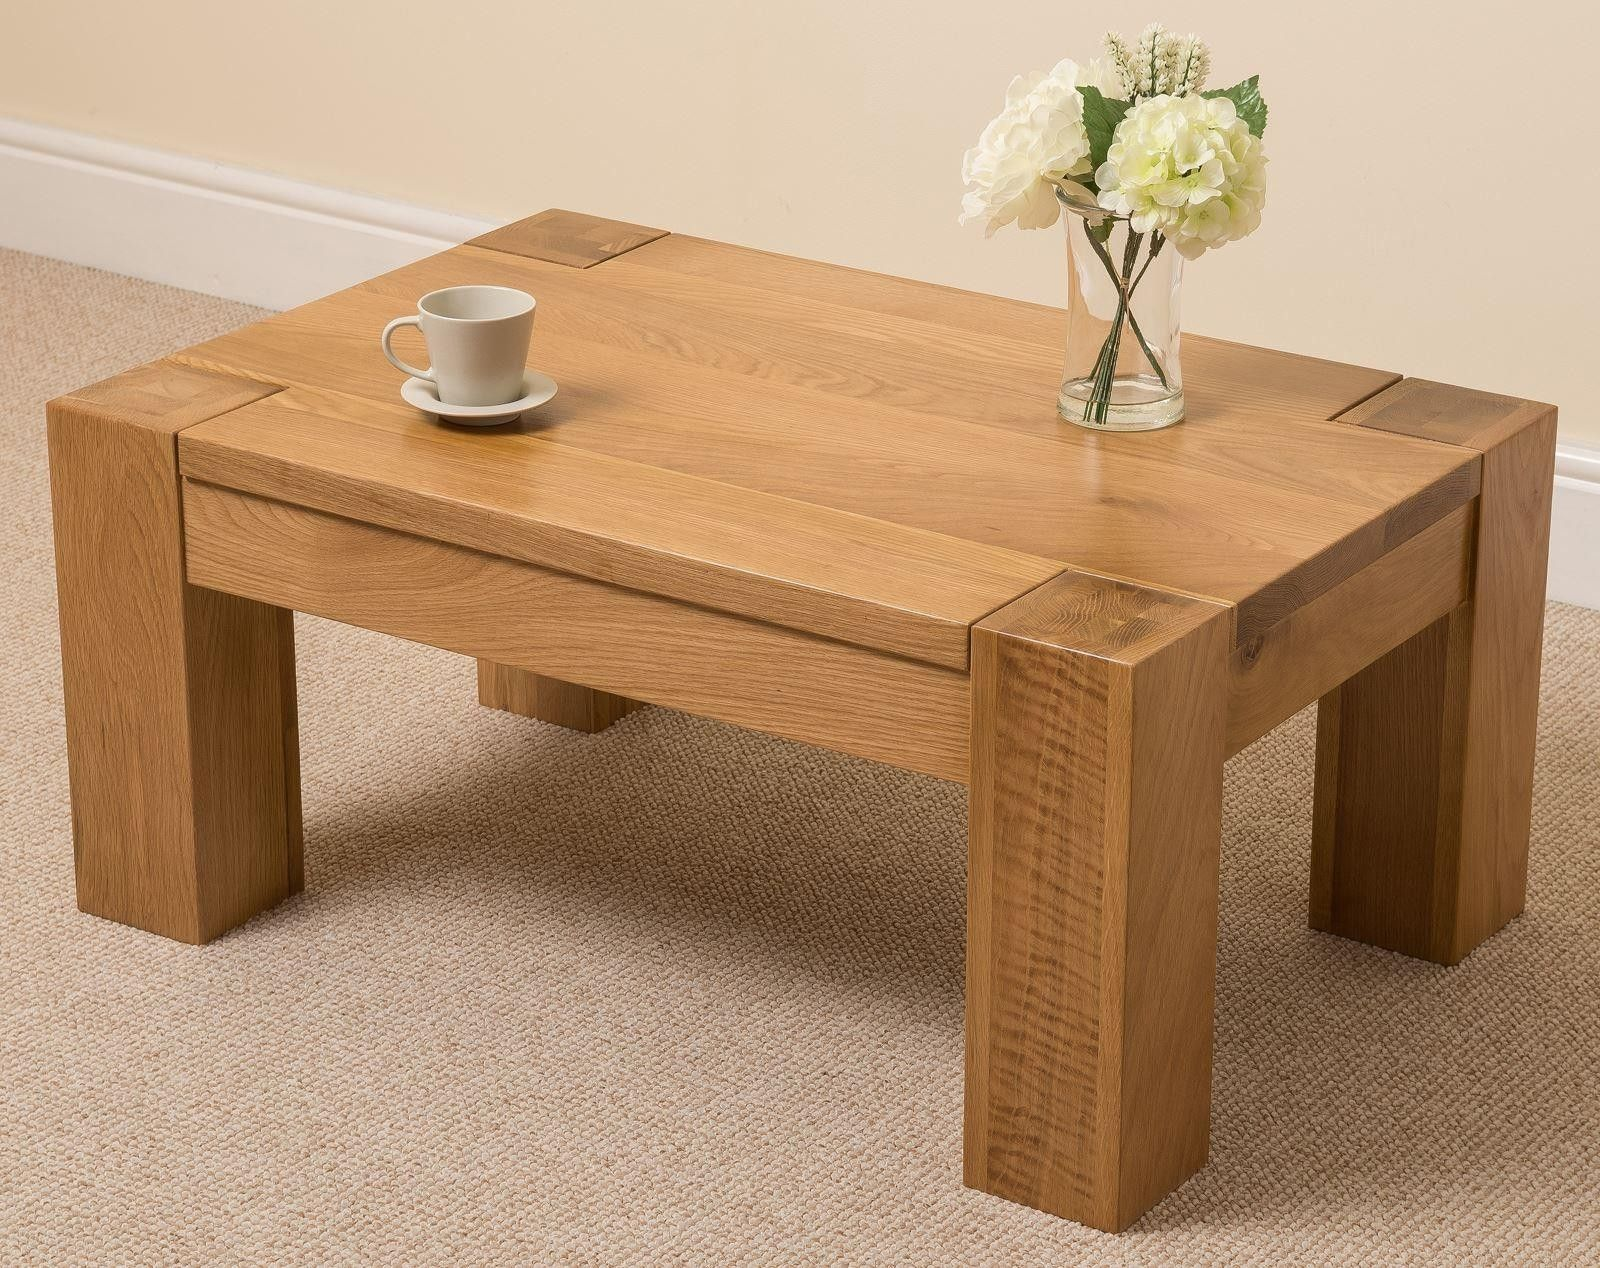 Solid Light Wood Coffee Table Walls In 2019 Wooden Coffe Table